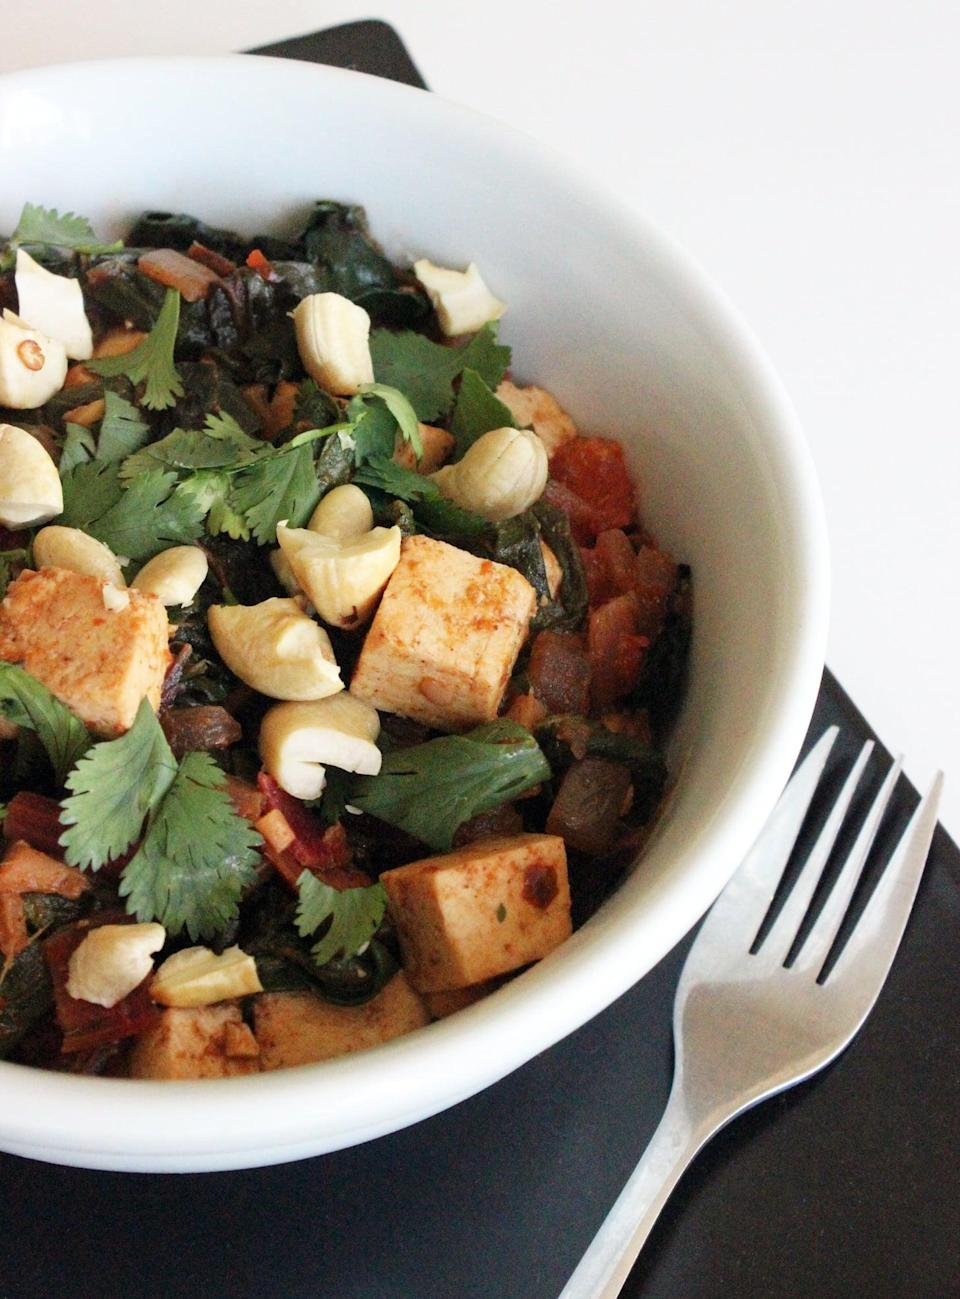 """<p>After a long day, a bowl of Indian-spiced chard served alongside a whole-wheat pita or rice will fill you up.</p> <p><strong>Get the recipe:</strong> <a href=""""https://www.popsugar.com/fitness/Healthy-Indian-Tofu-Curry-5477629"""" class=""""link rapid-noclick-resp"""" rel=""""nofollow noopener"""" target=""""_blank"""" data-ylk=""""slk:Indian-spiced chard"""">Indian-spiced chard</a></p>"""